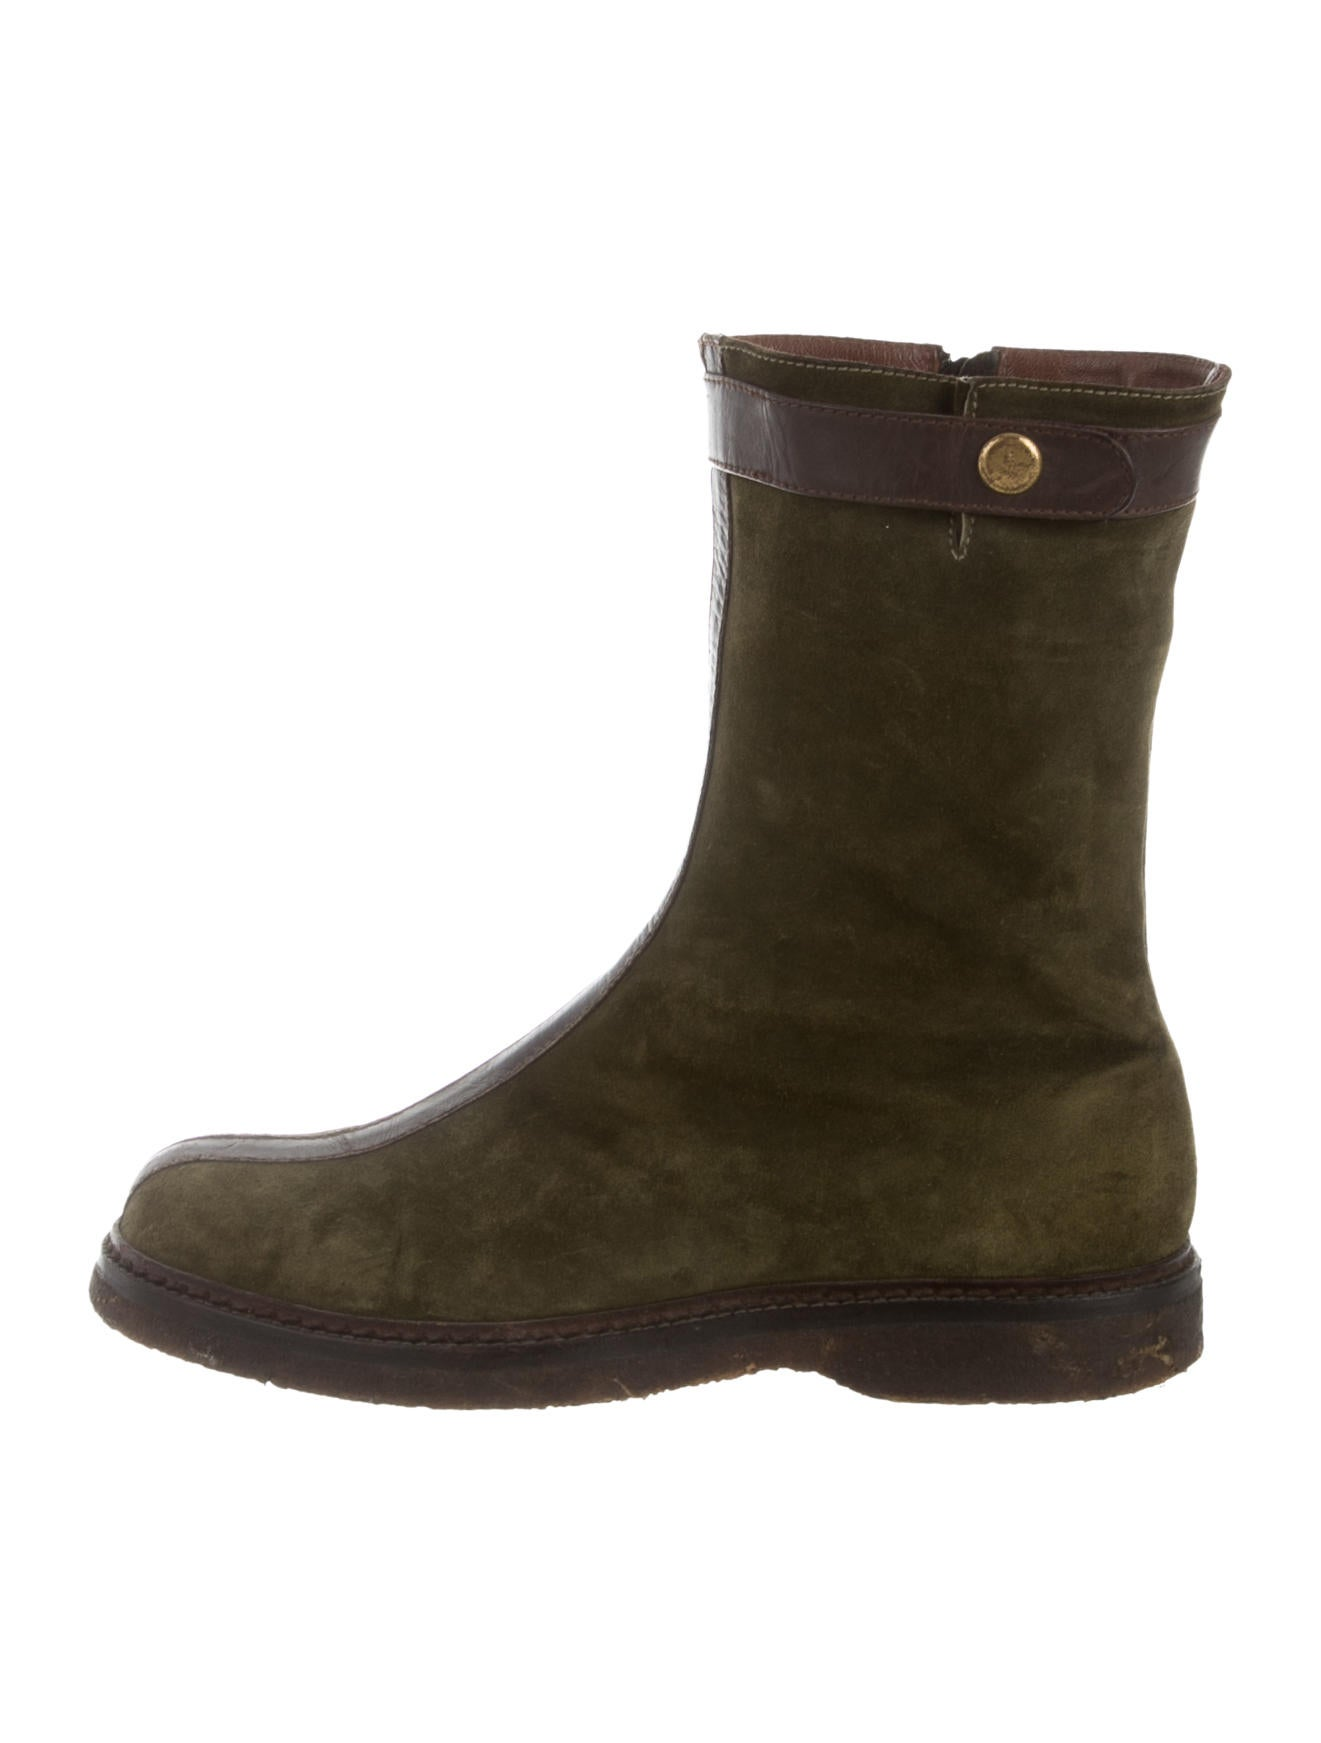 henry beguelin suede toe ankle boots shoes